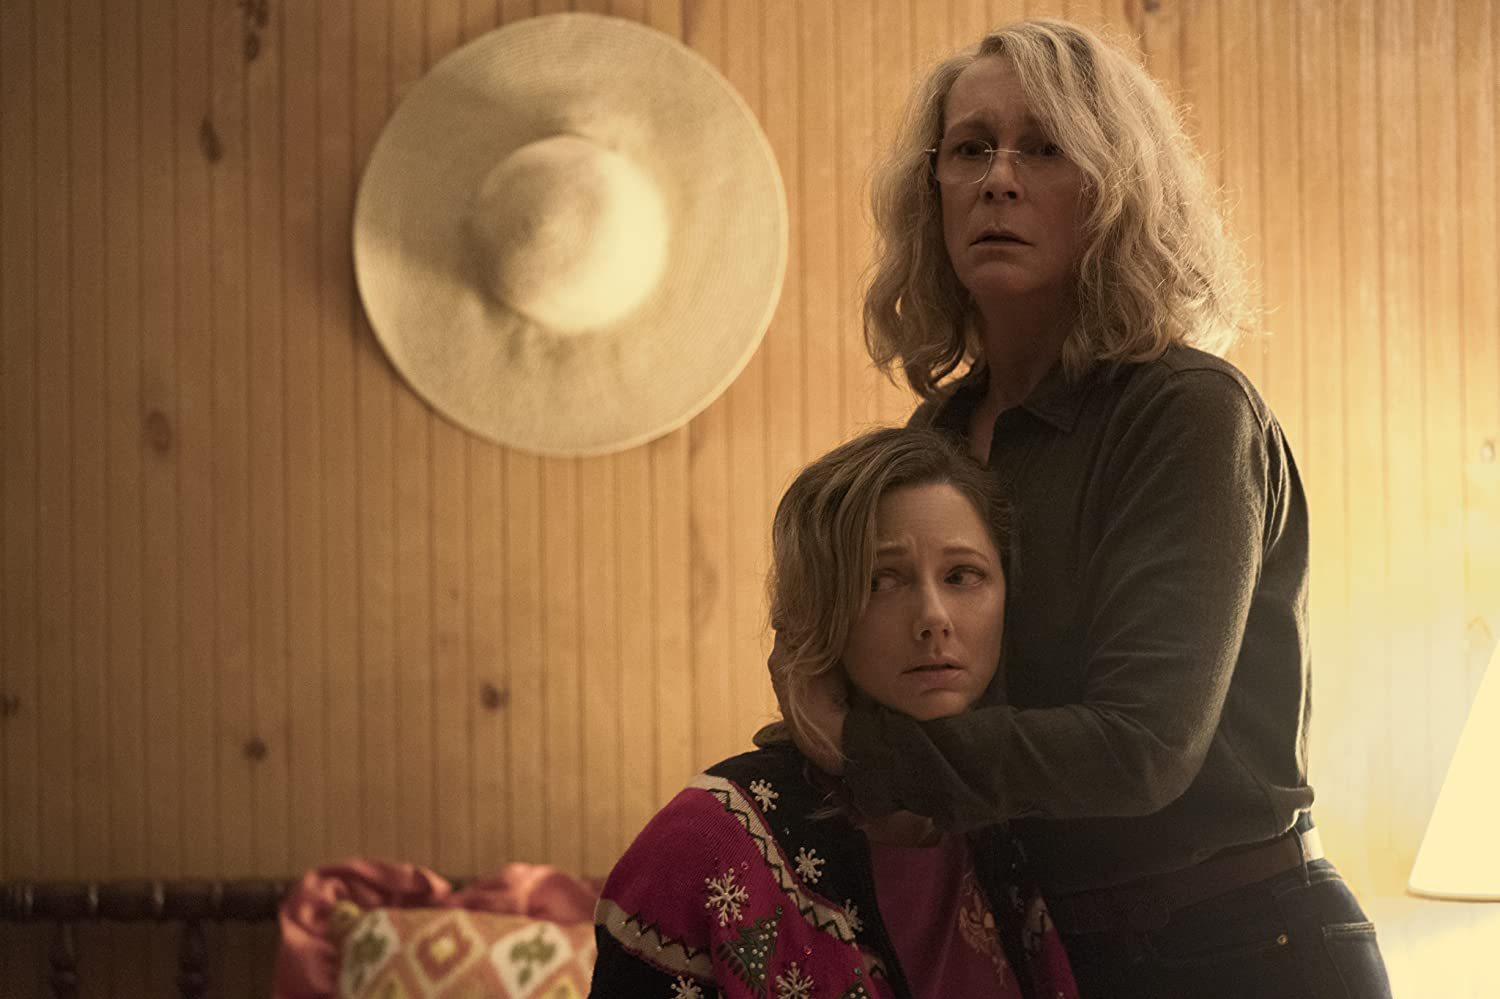 Jamie Lee Curtis and Judy Greer in Halloween (2018)